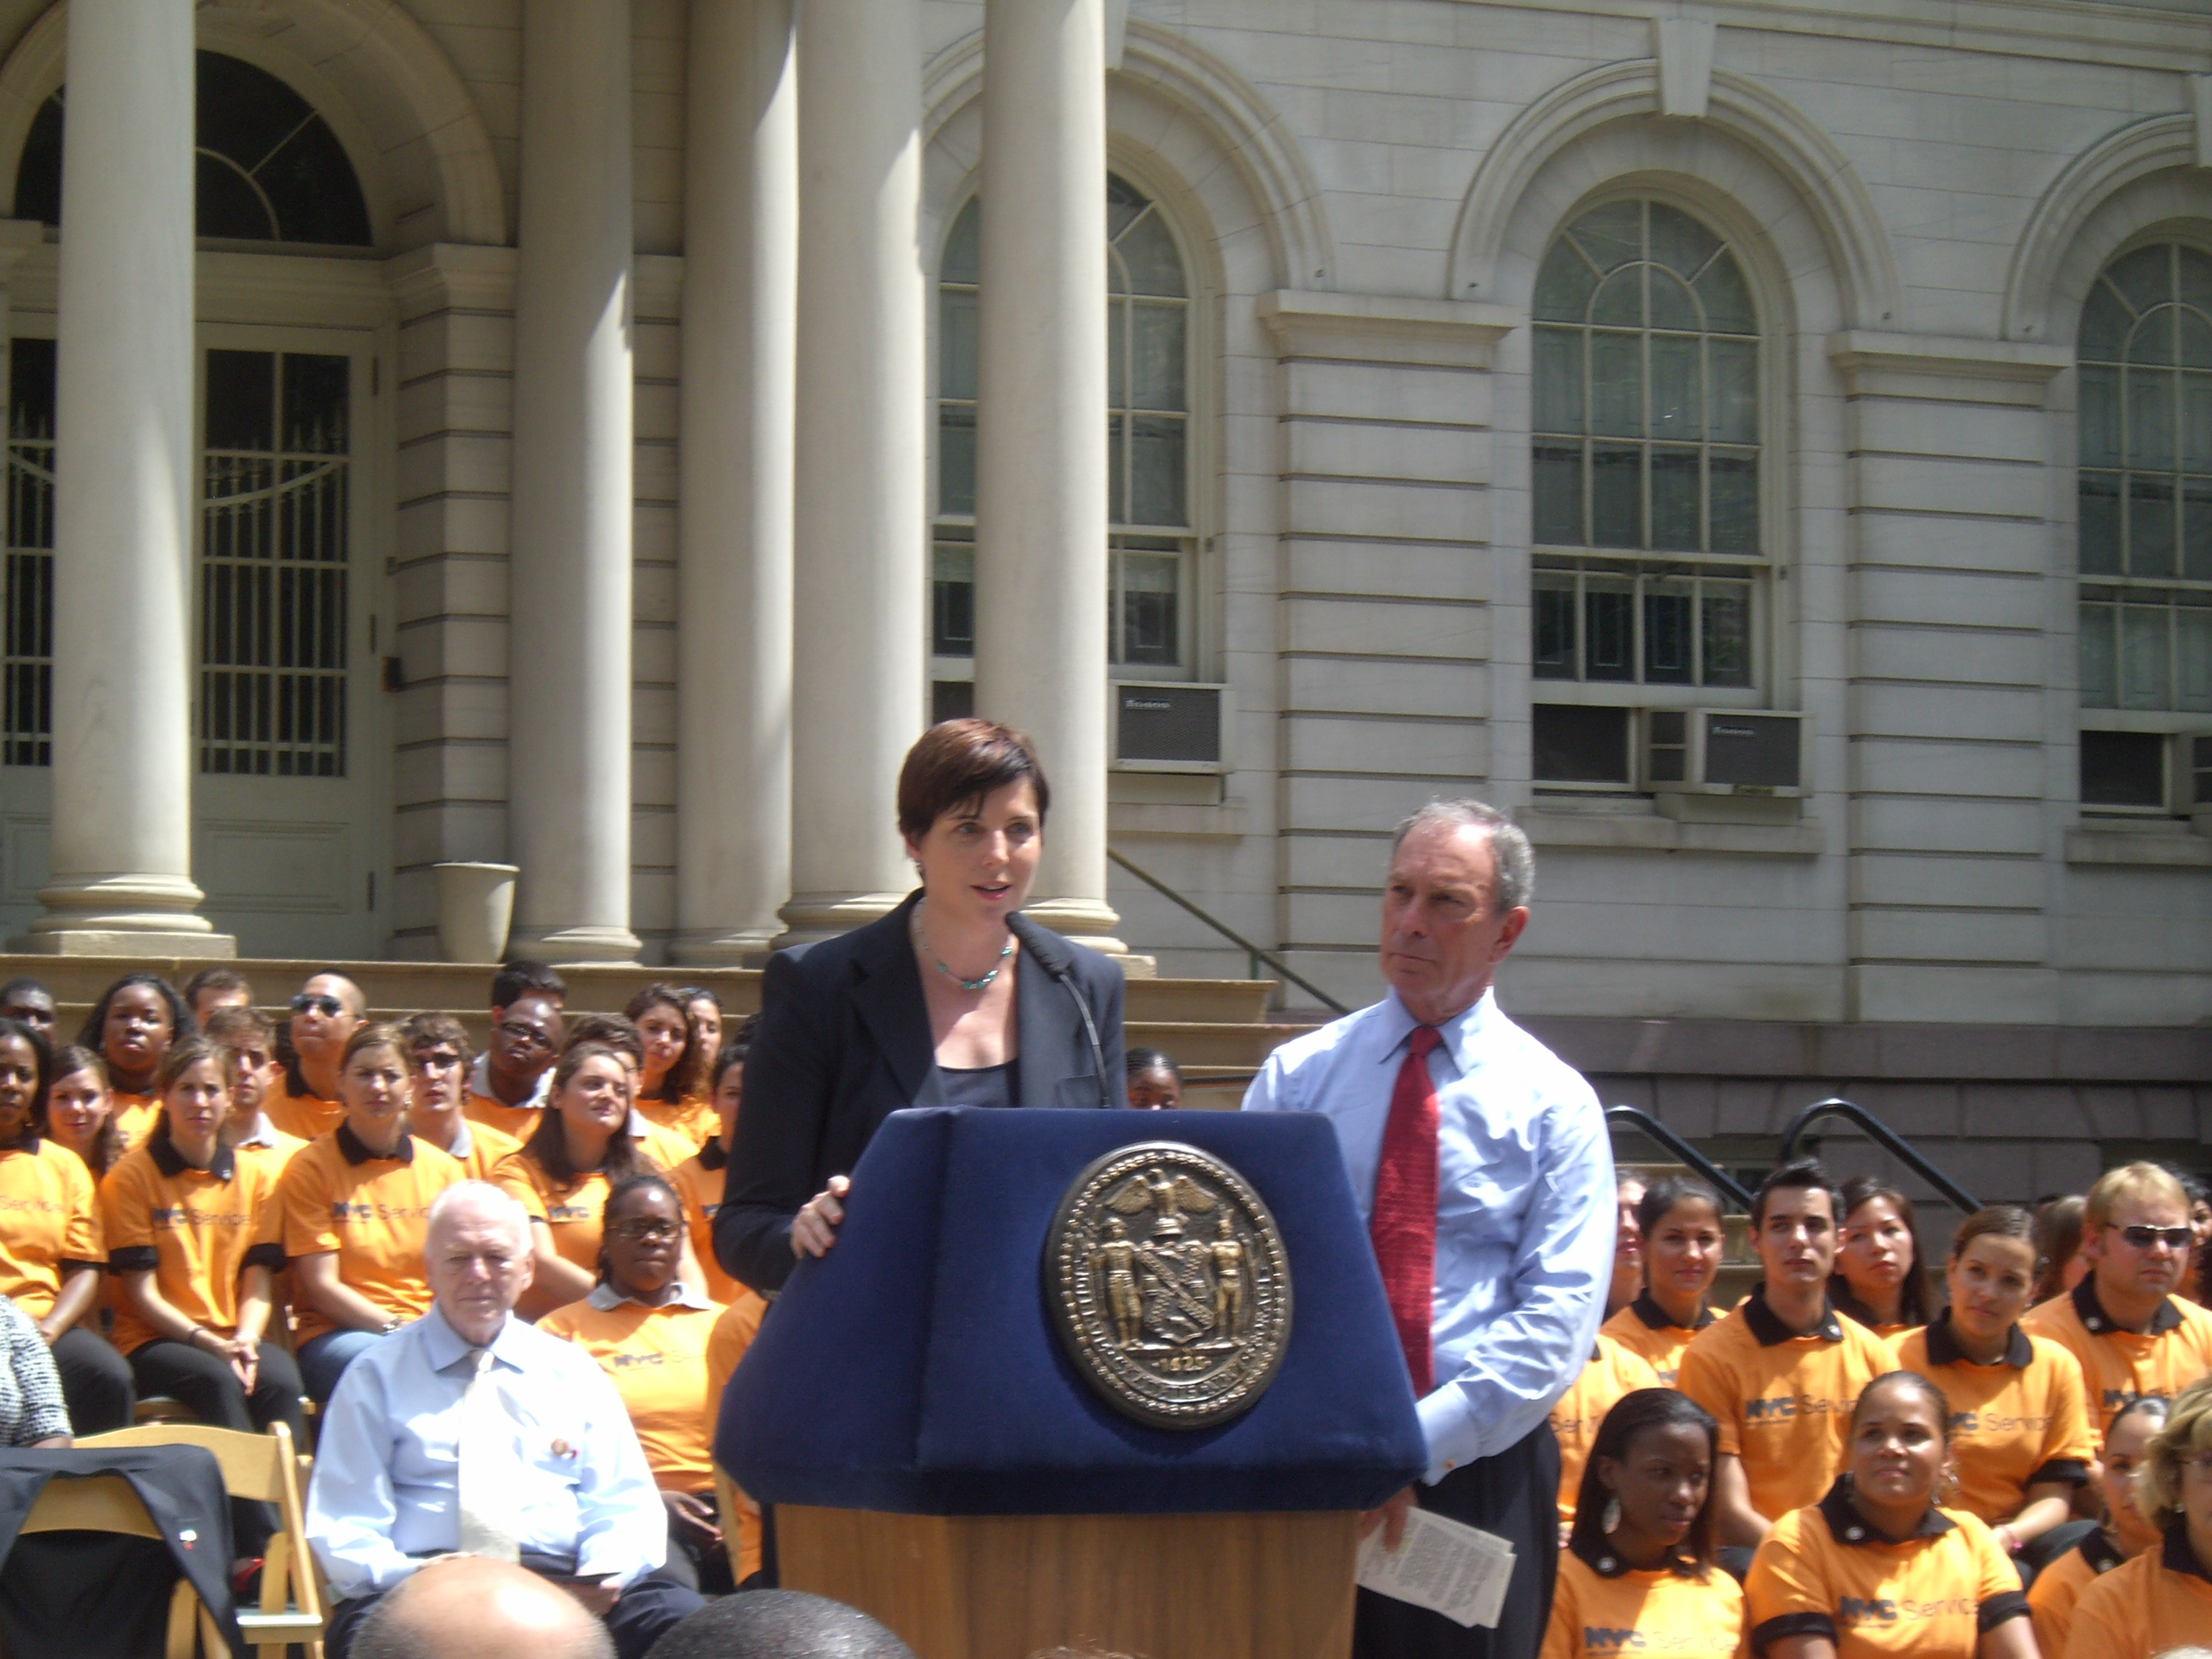 NYC Mayor Michael R. Bloomberg and Corp for Nat'l Community Service Acting CEO Nicola Goren